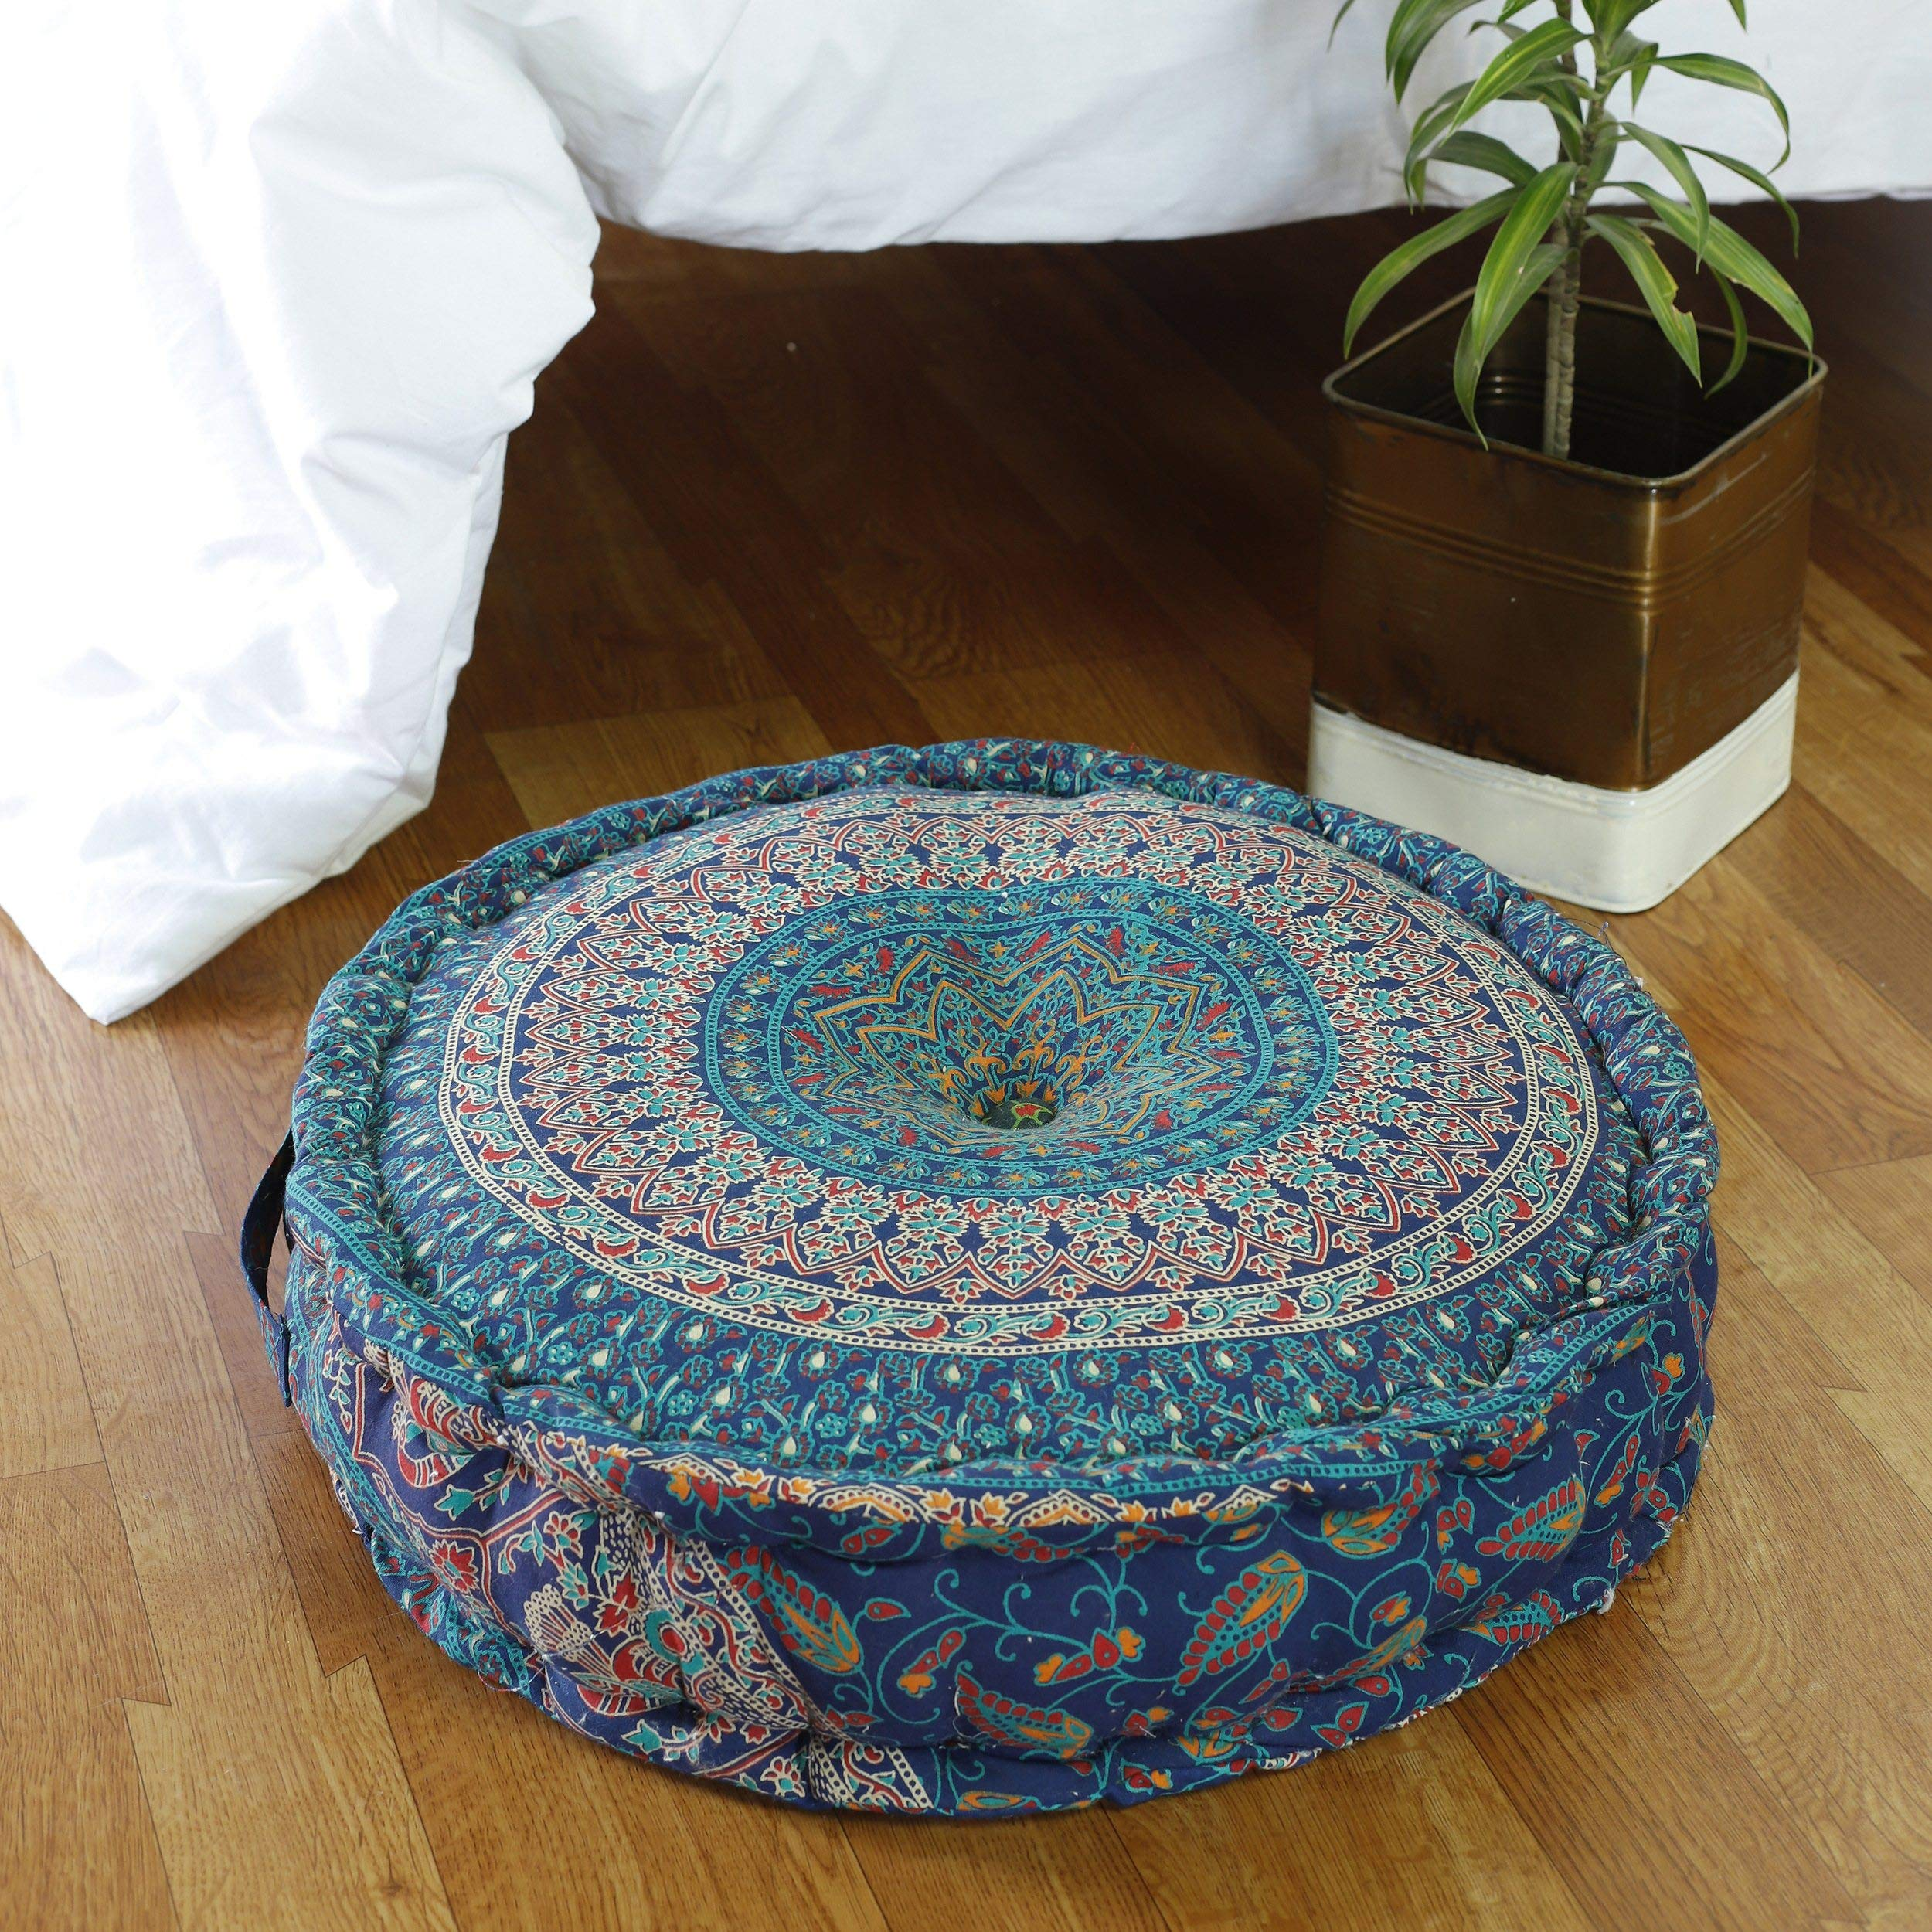 HANDICRAFT-PALACE Traditional Sanganeri Print Cushion Pillow Home Decor Throw Mandala Cotton Filled Seat Ottoman Pouf Living Room Bed Room Seating Large 20'' Wide (Blue)